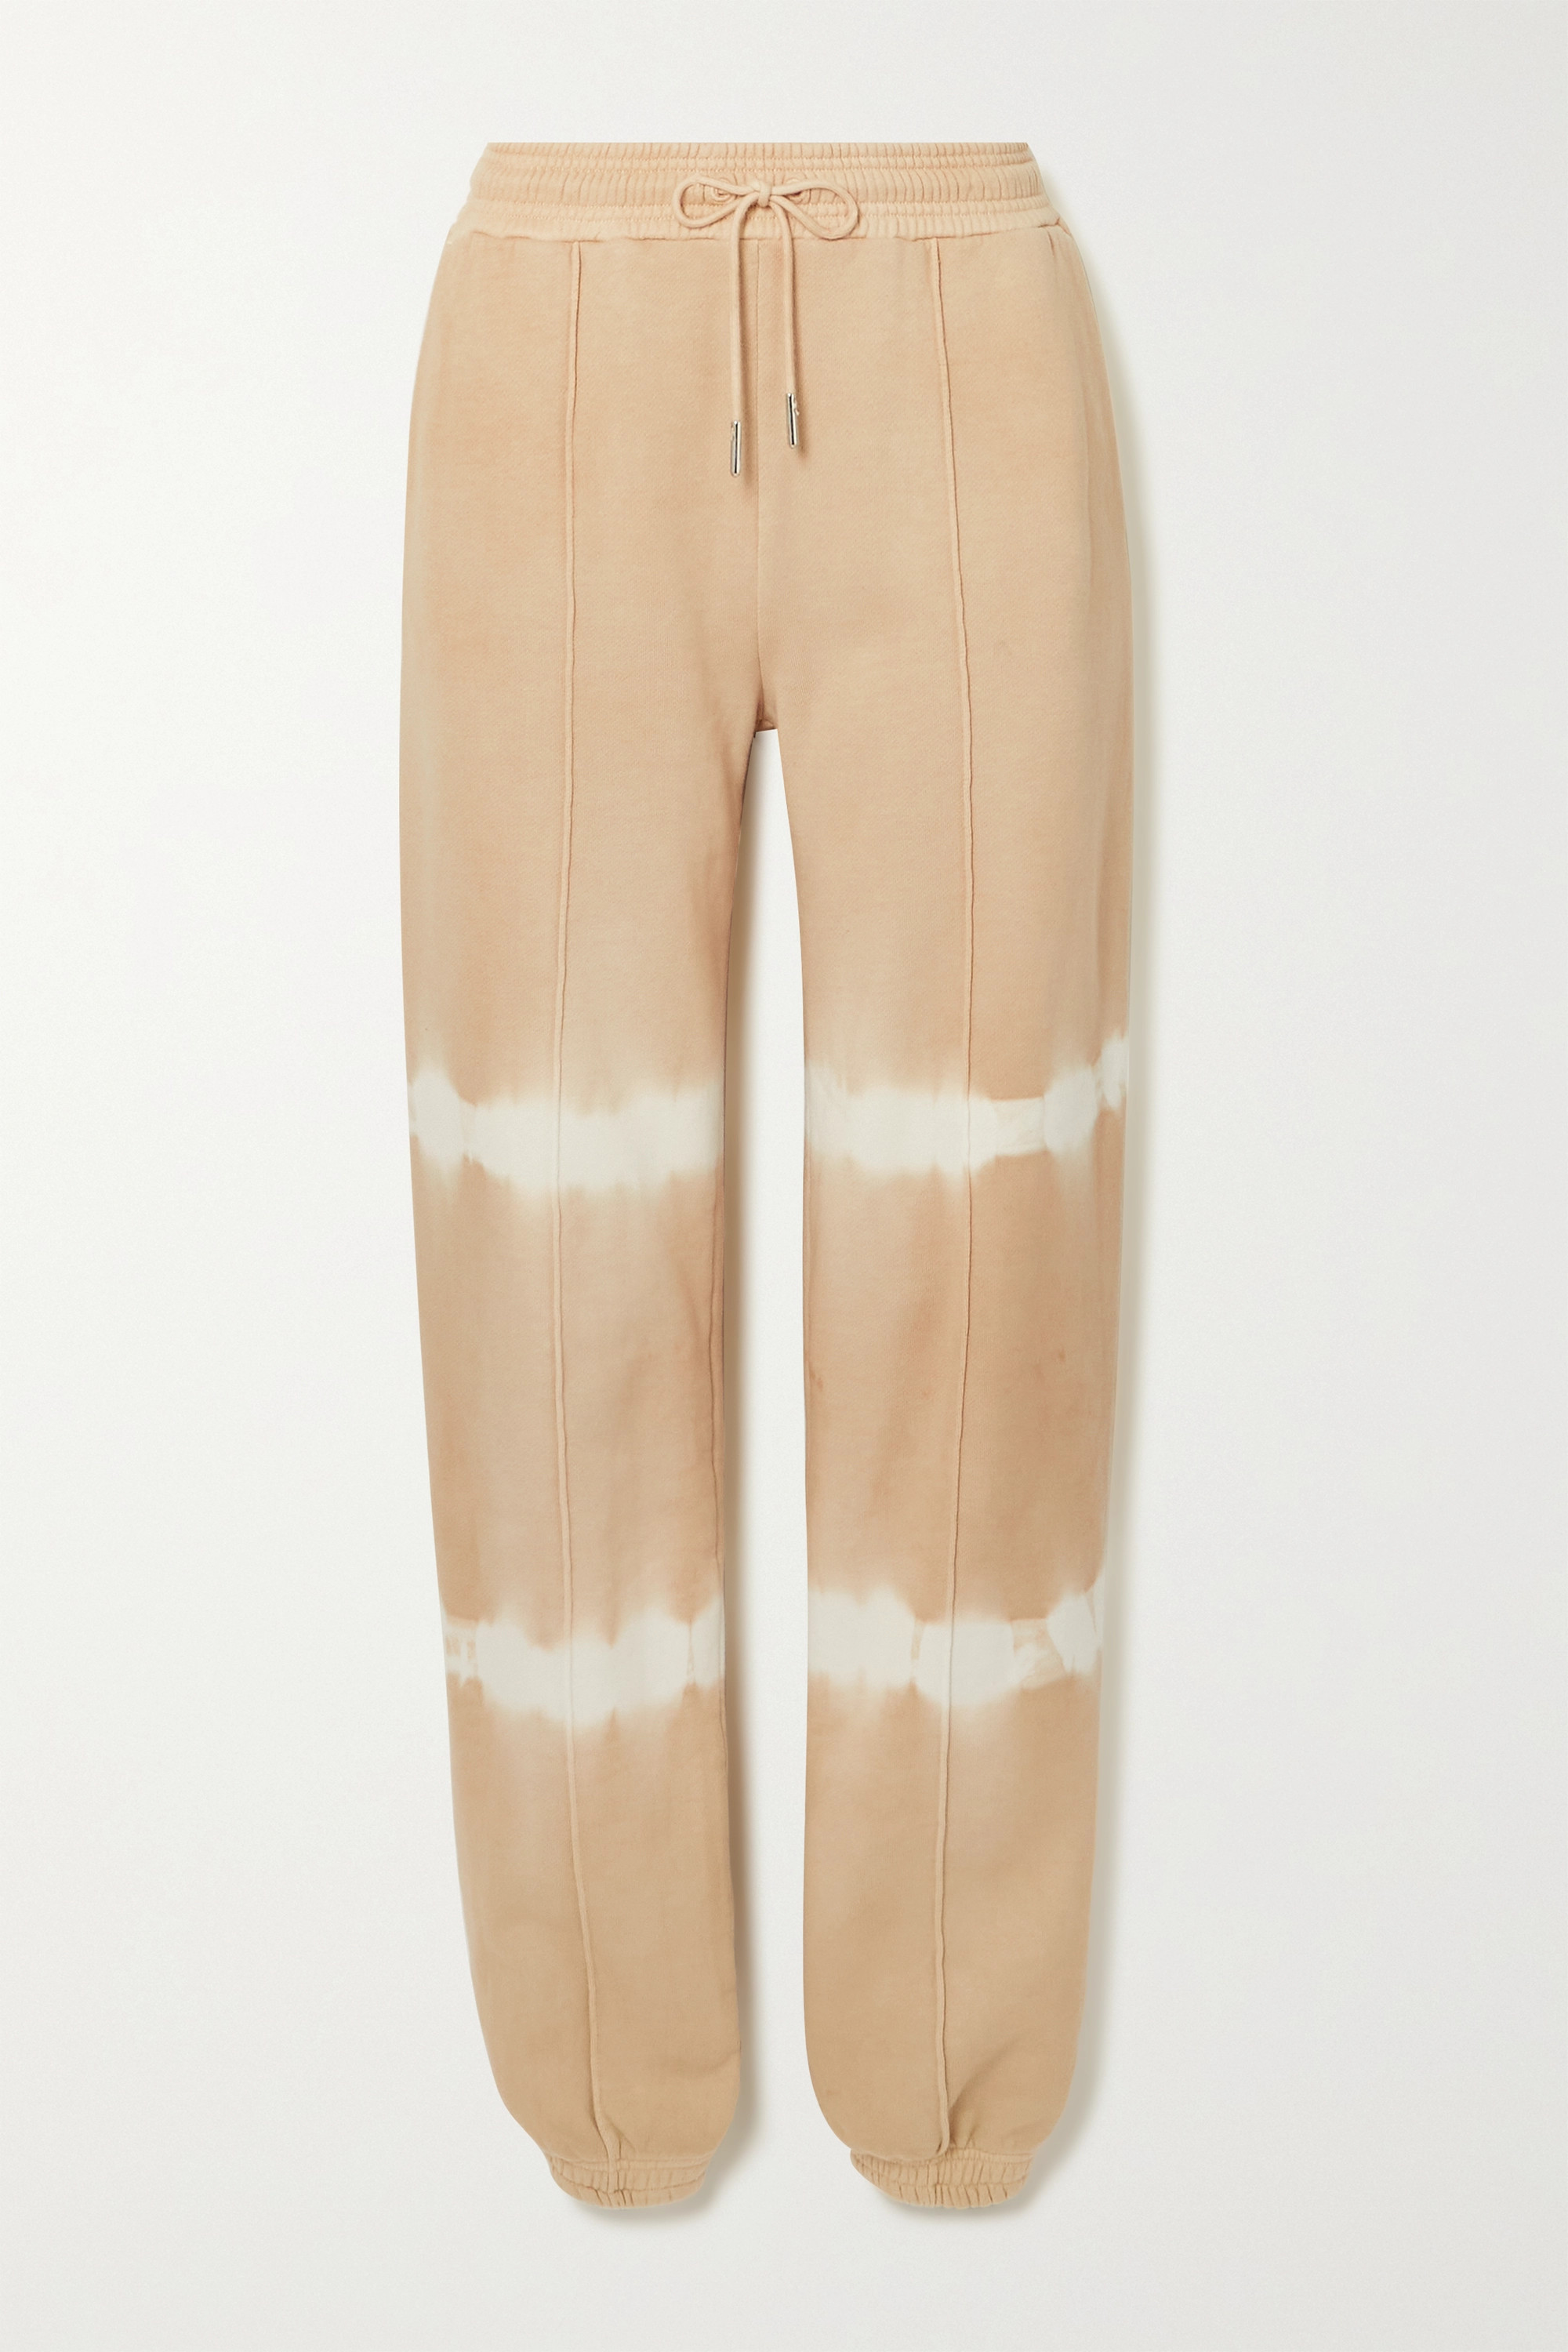 NINETY PERCENT + NET SUSTAIN tie-dyed organic cotton-jersey track pants